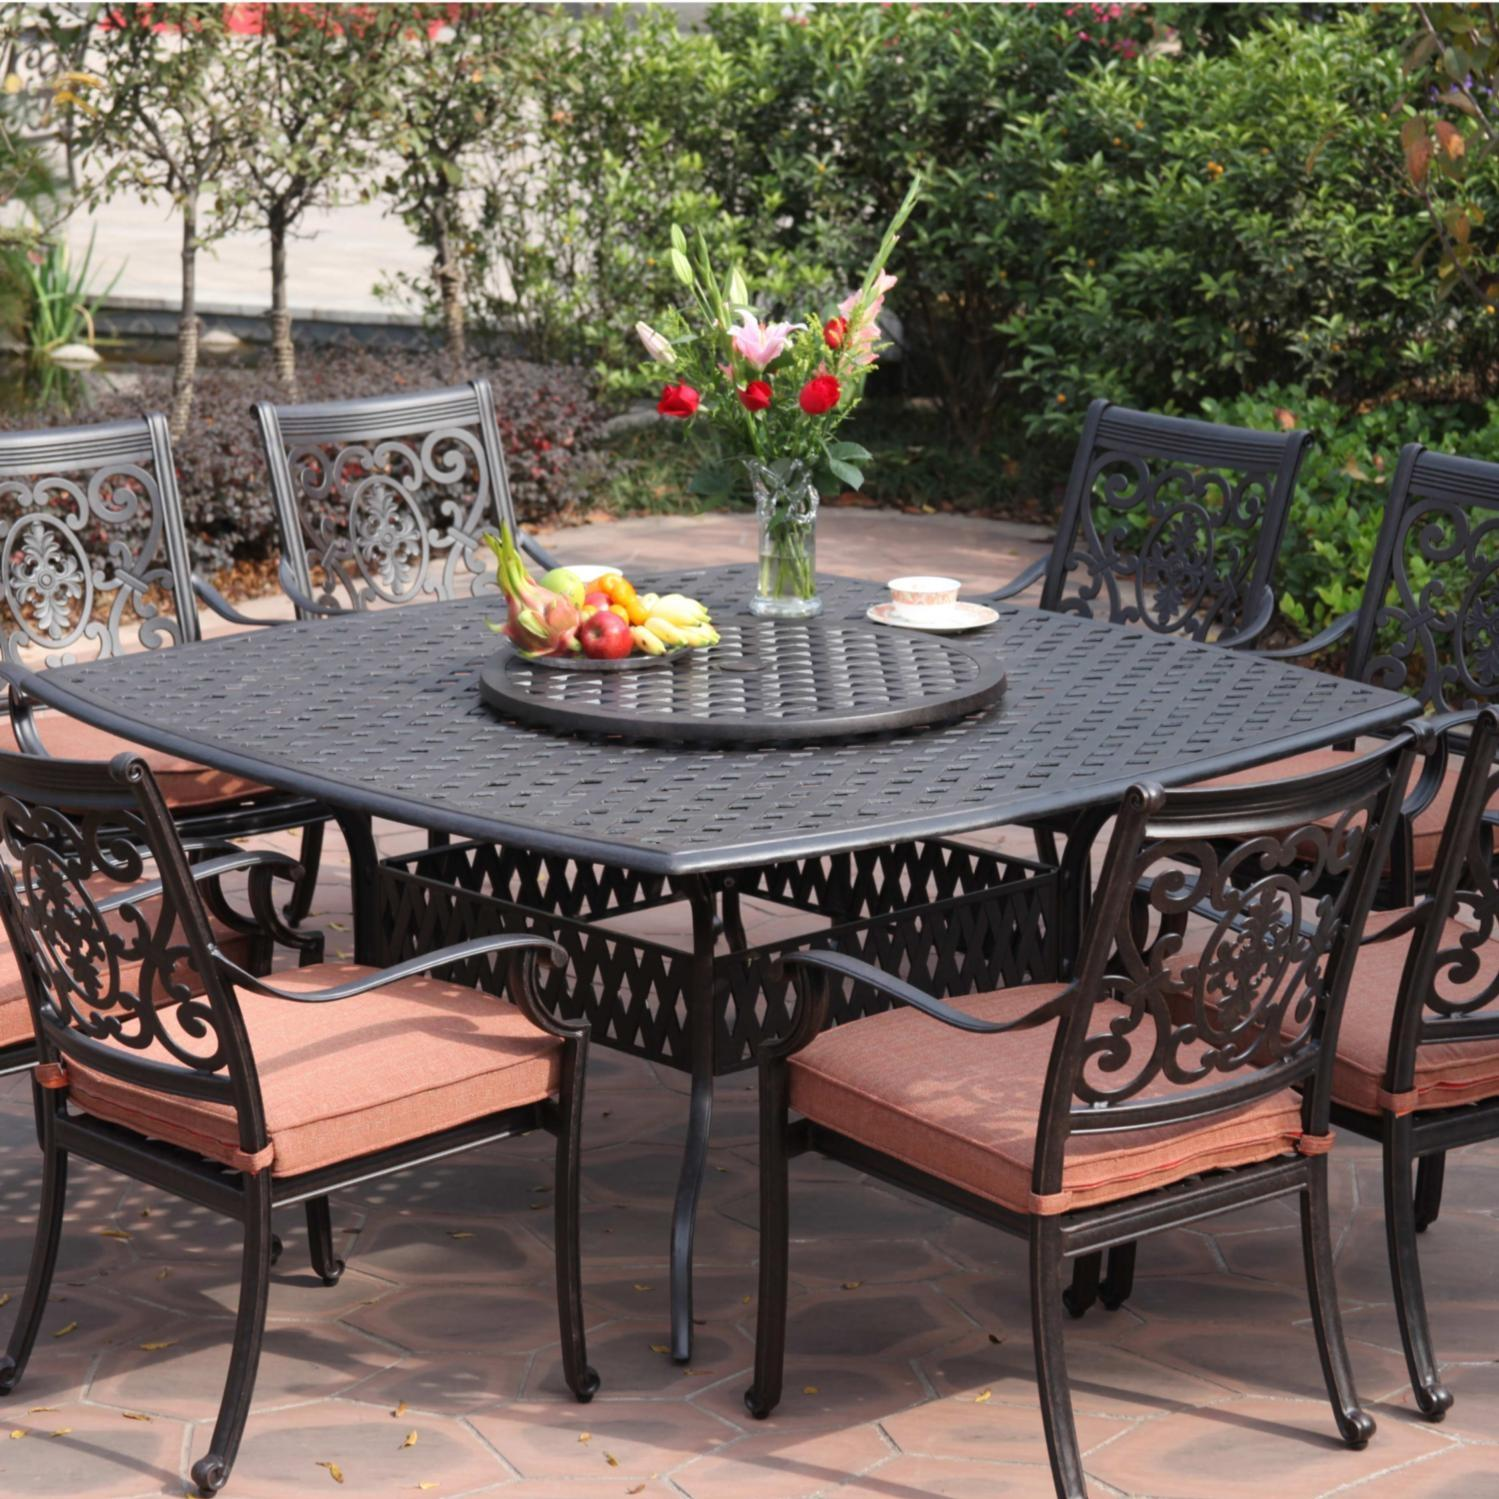 Discount Patio Chairs Discount Patio Dining Sets Patio Design Ideas